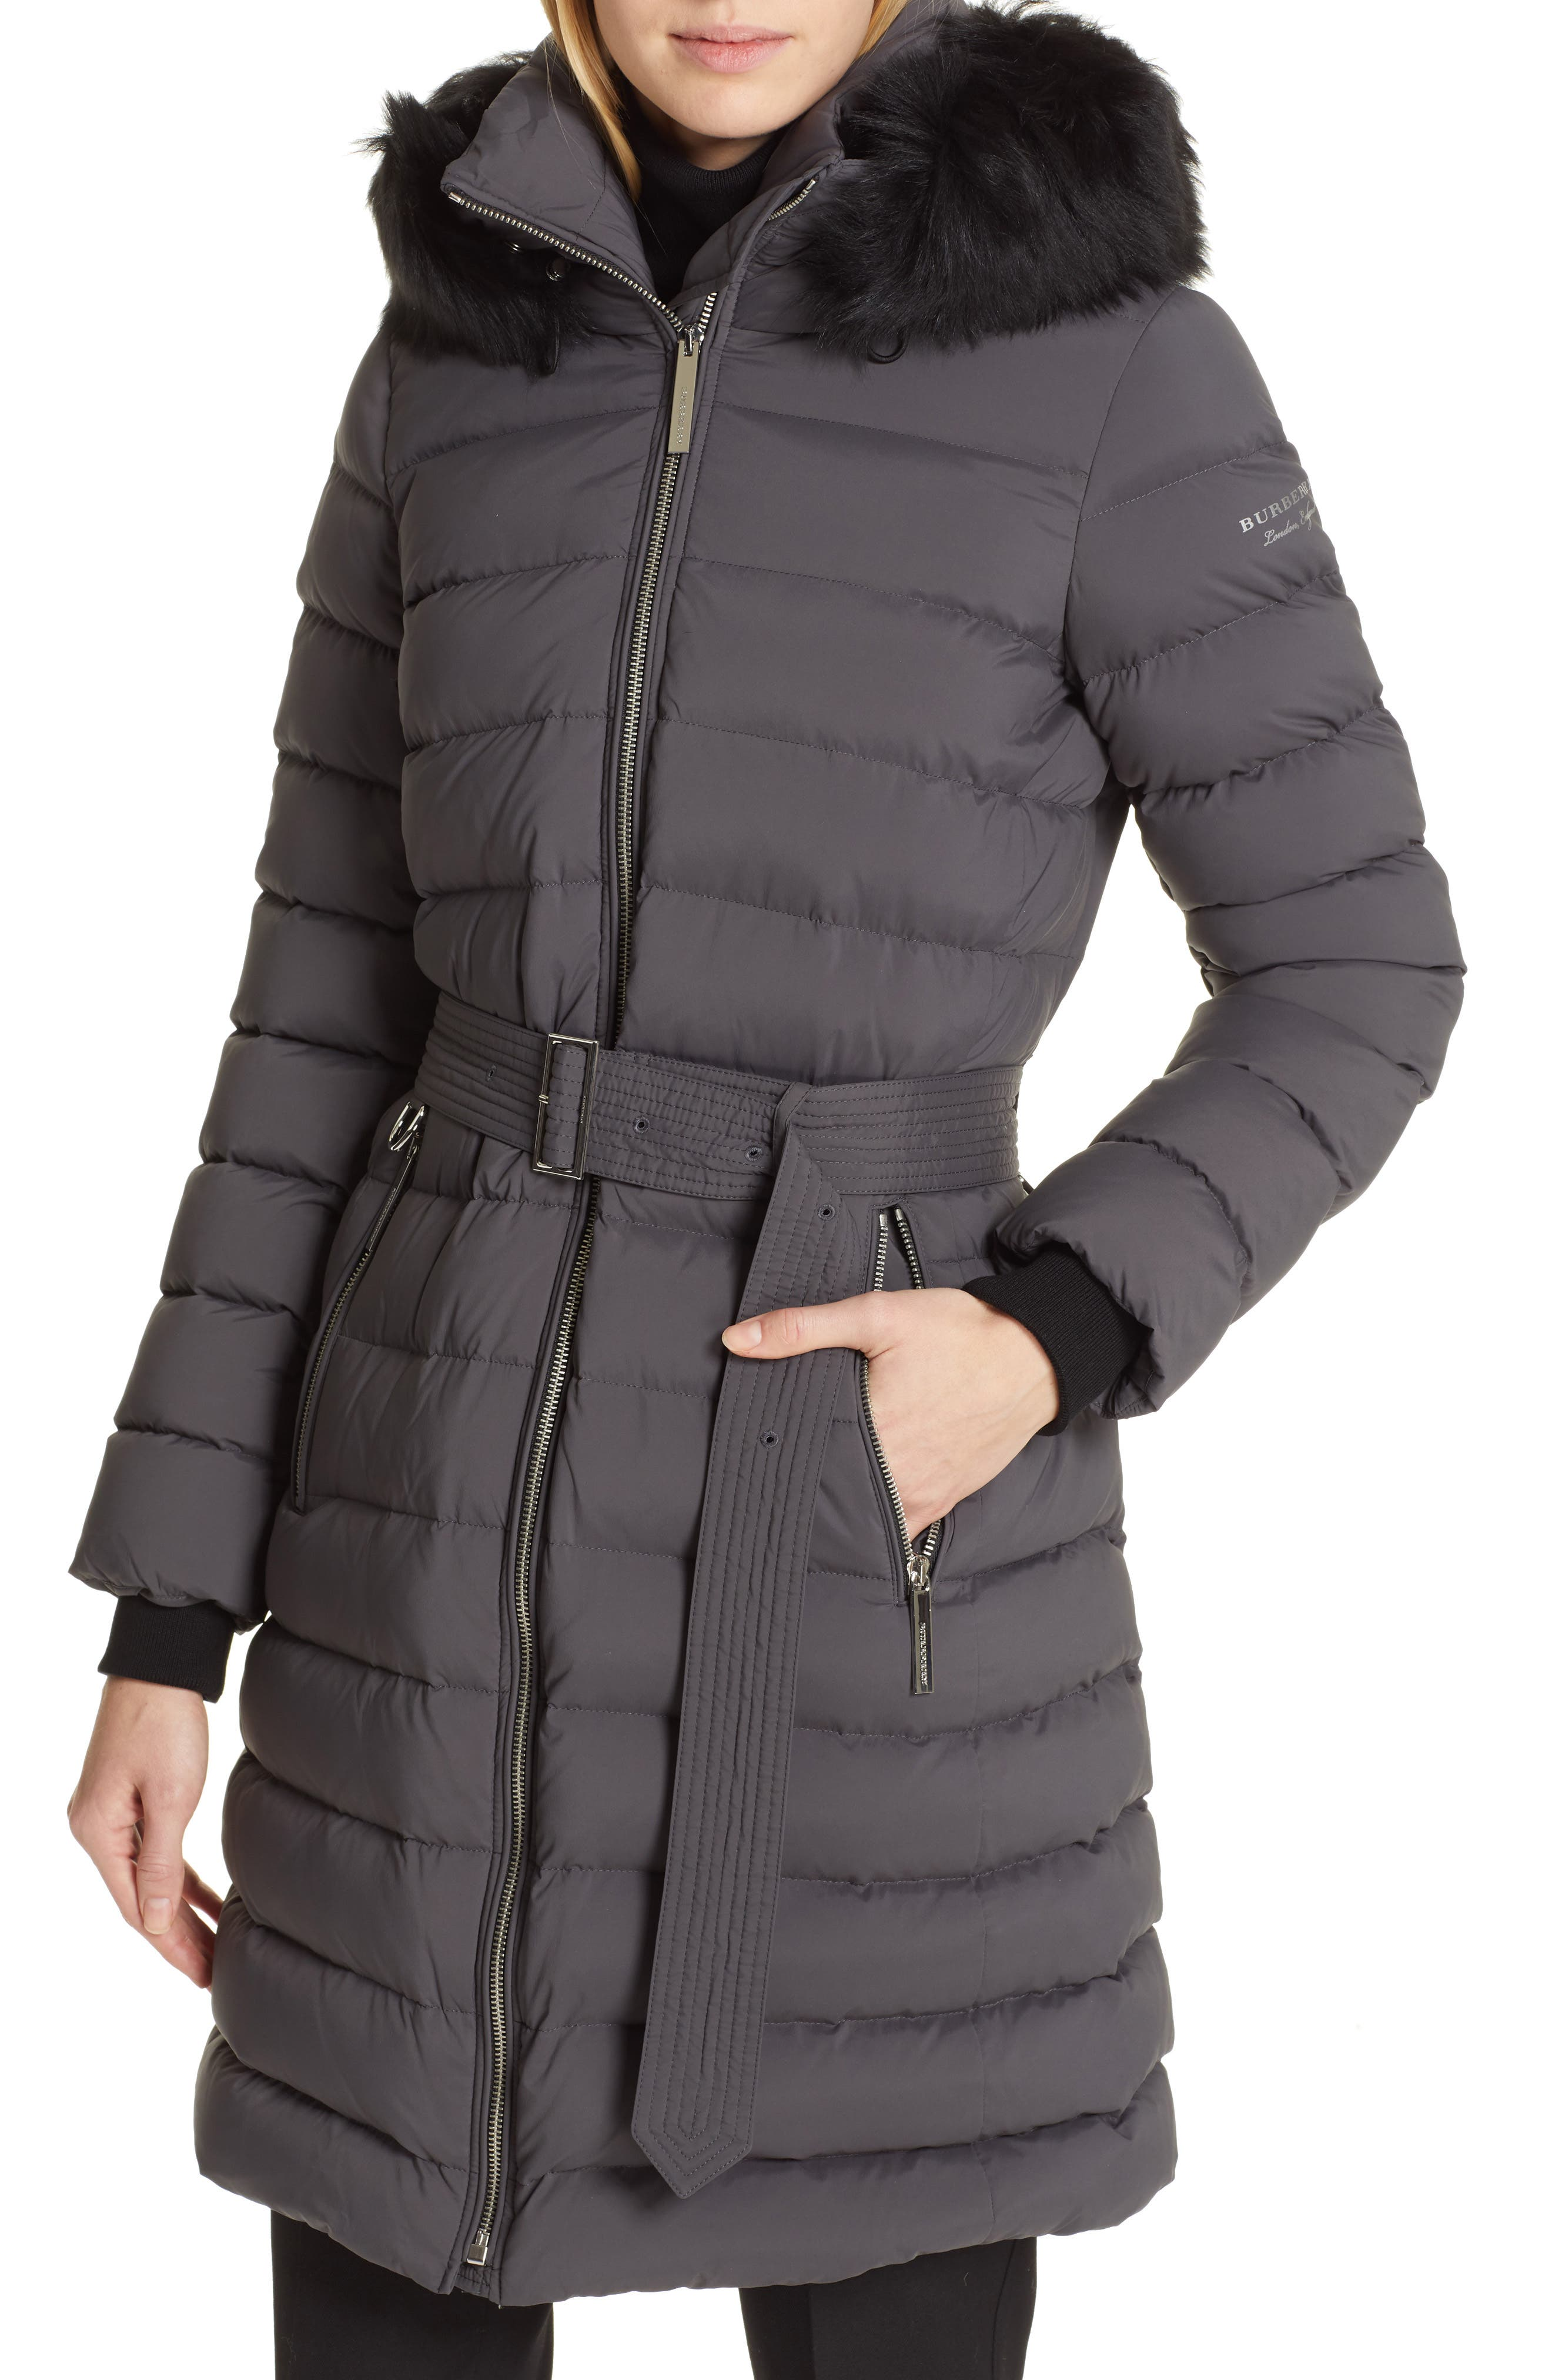 BURBERRY, Limehouse Quilted Down Puffer Coat with Removable Genuine Shearling Trim, Alternate thumbnail 6, color, MID GREY